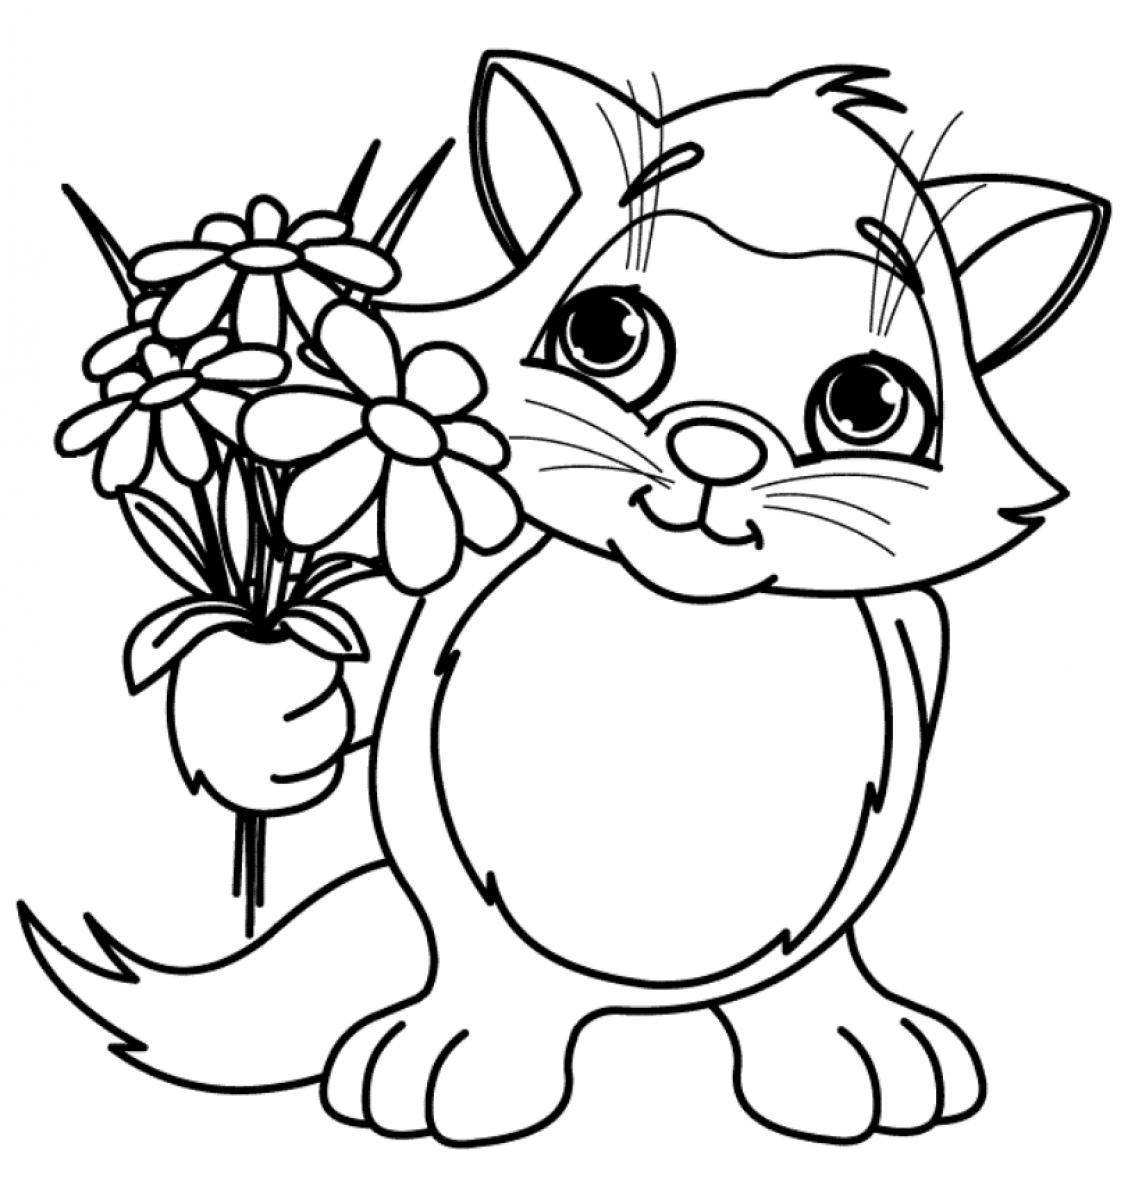 Spring rain coloring pages - Explore Spring Coloring Pages Coloring Books And More